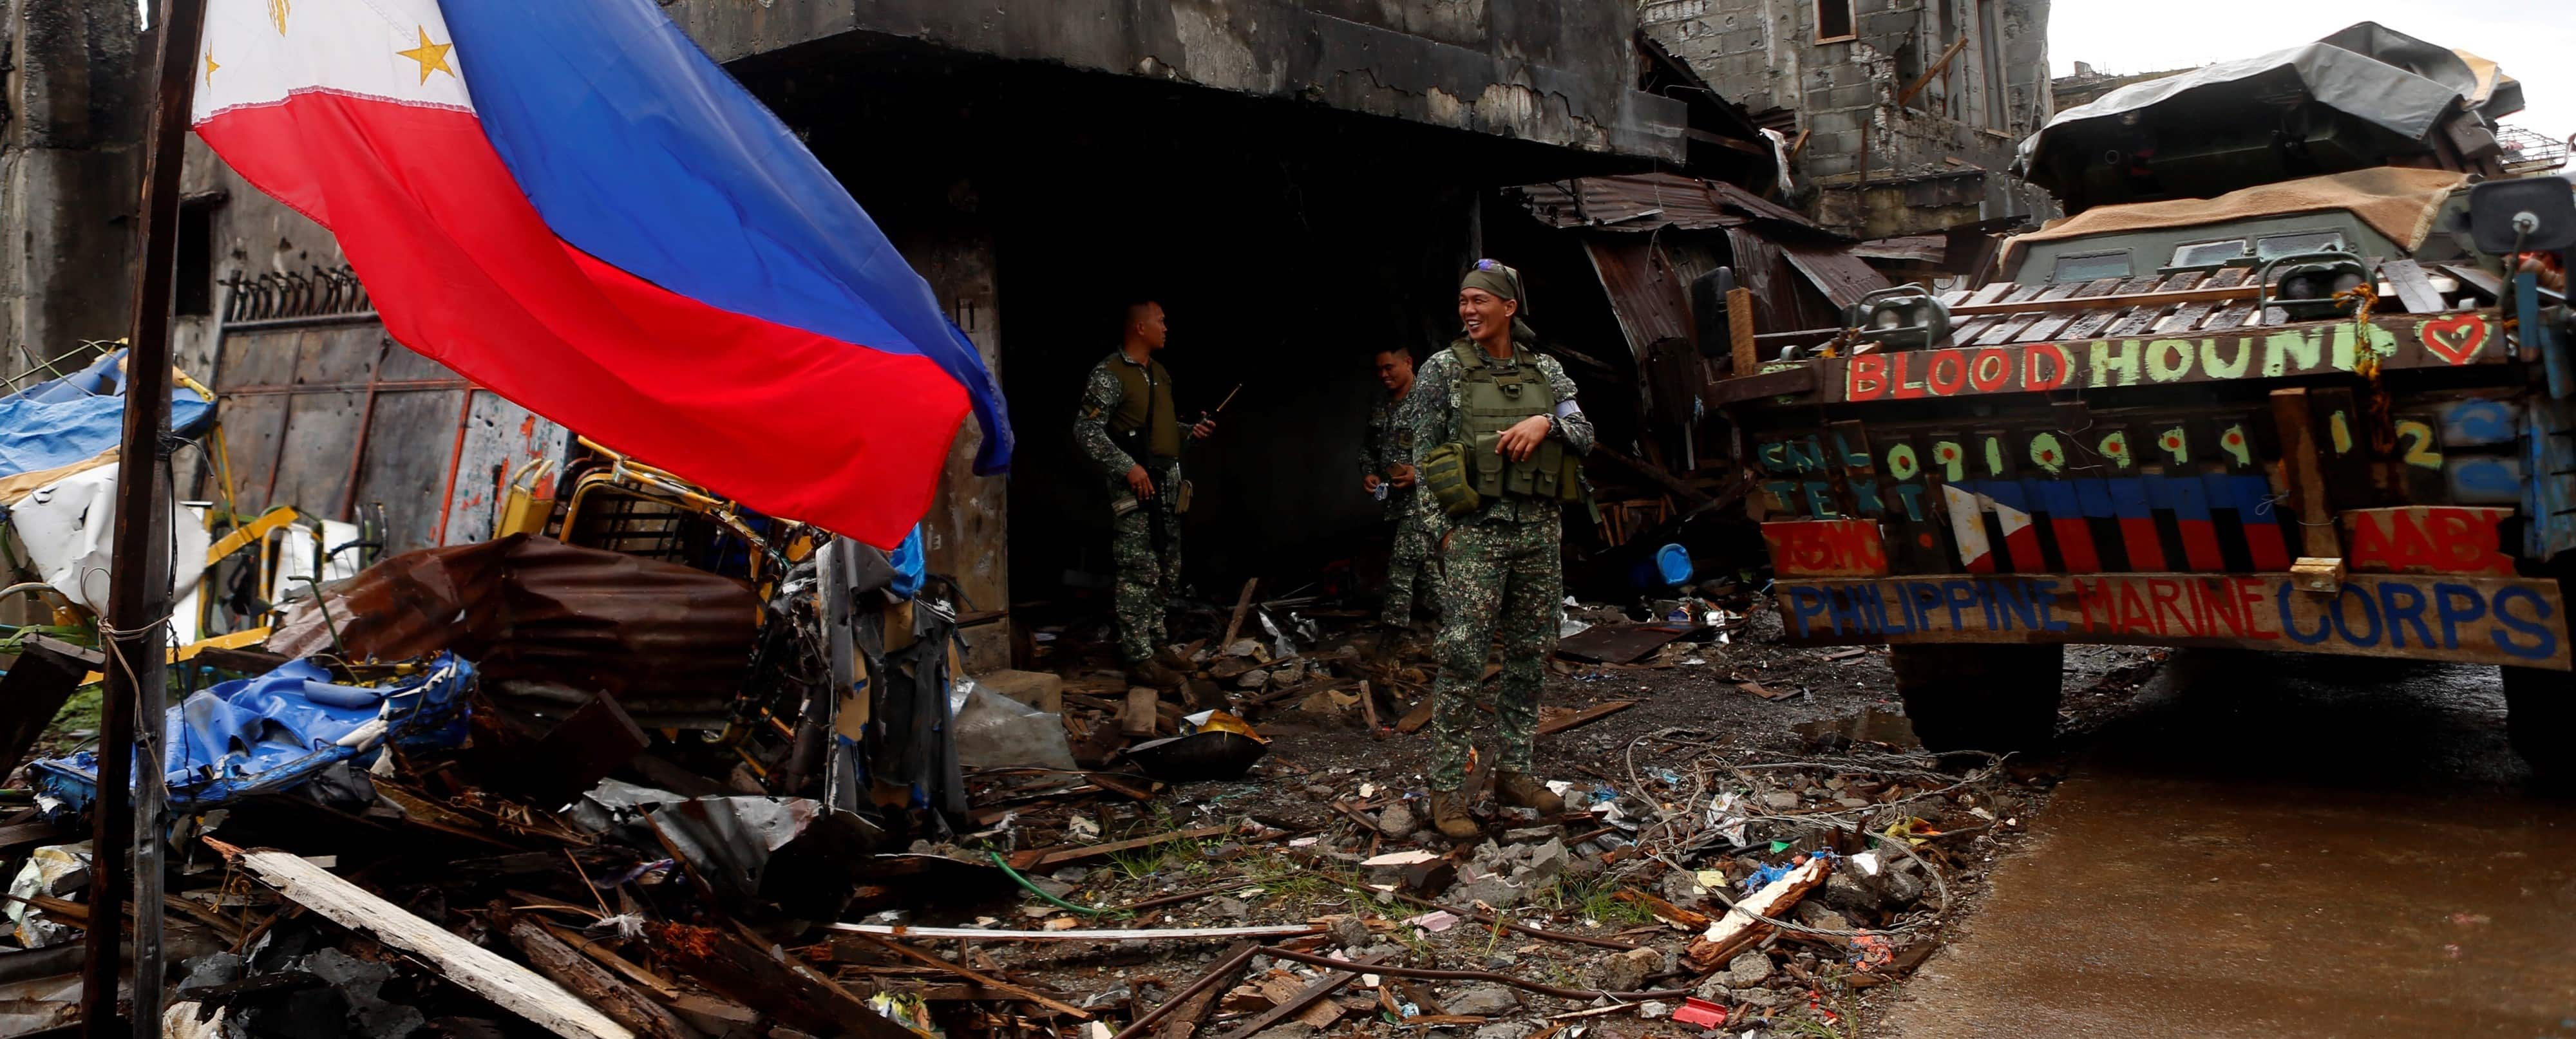 Philippine soldiers in Marawi, October 2017 (Photo: Jeoffrey Maitem/Anadolu Agency/Getty Images)